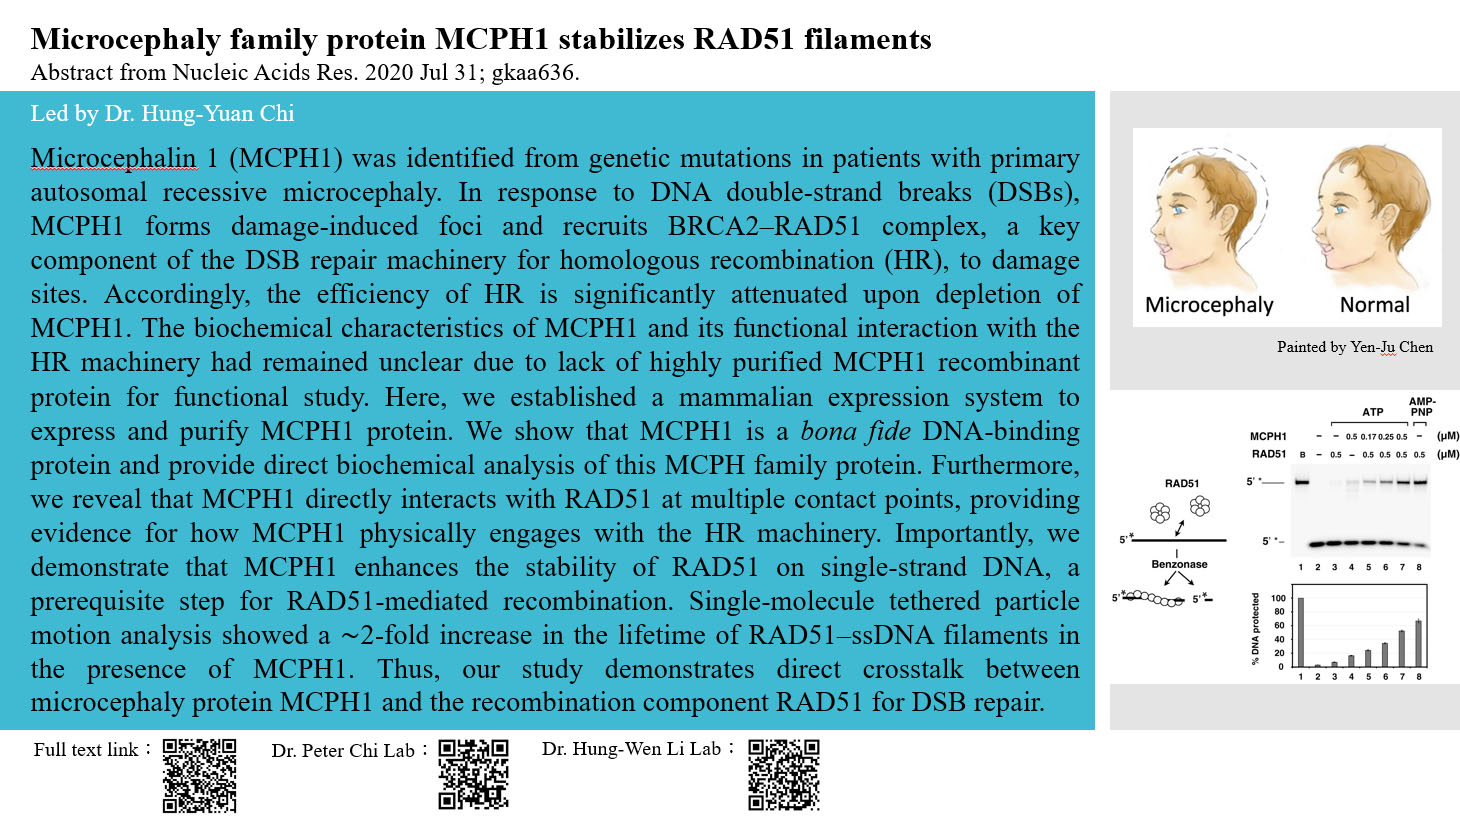 Microcephaly family protein MCPH1 stabilizes RAD51 filaments